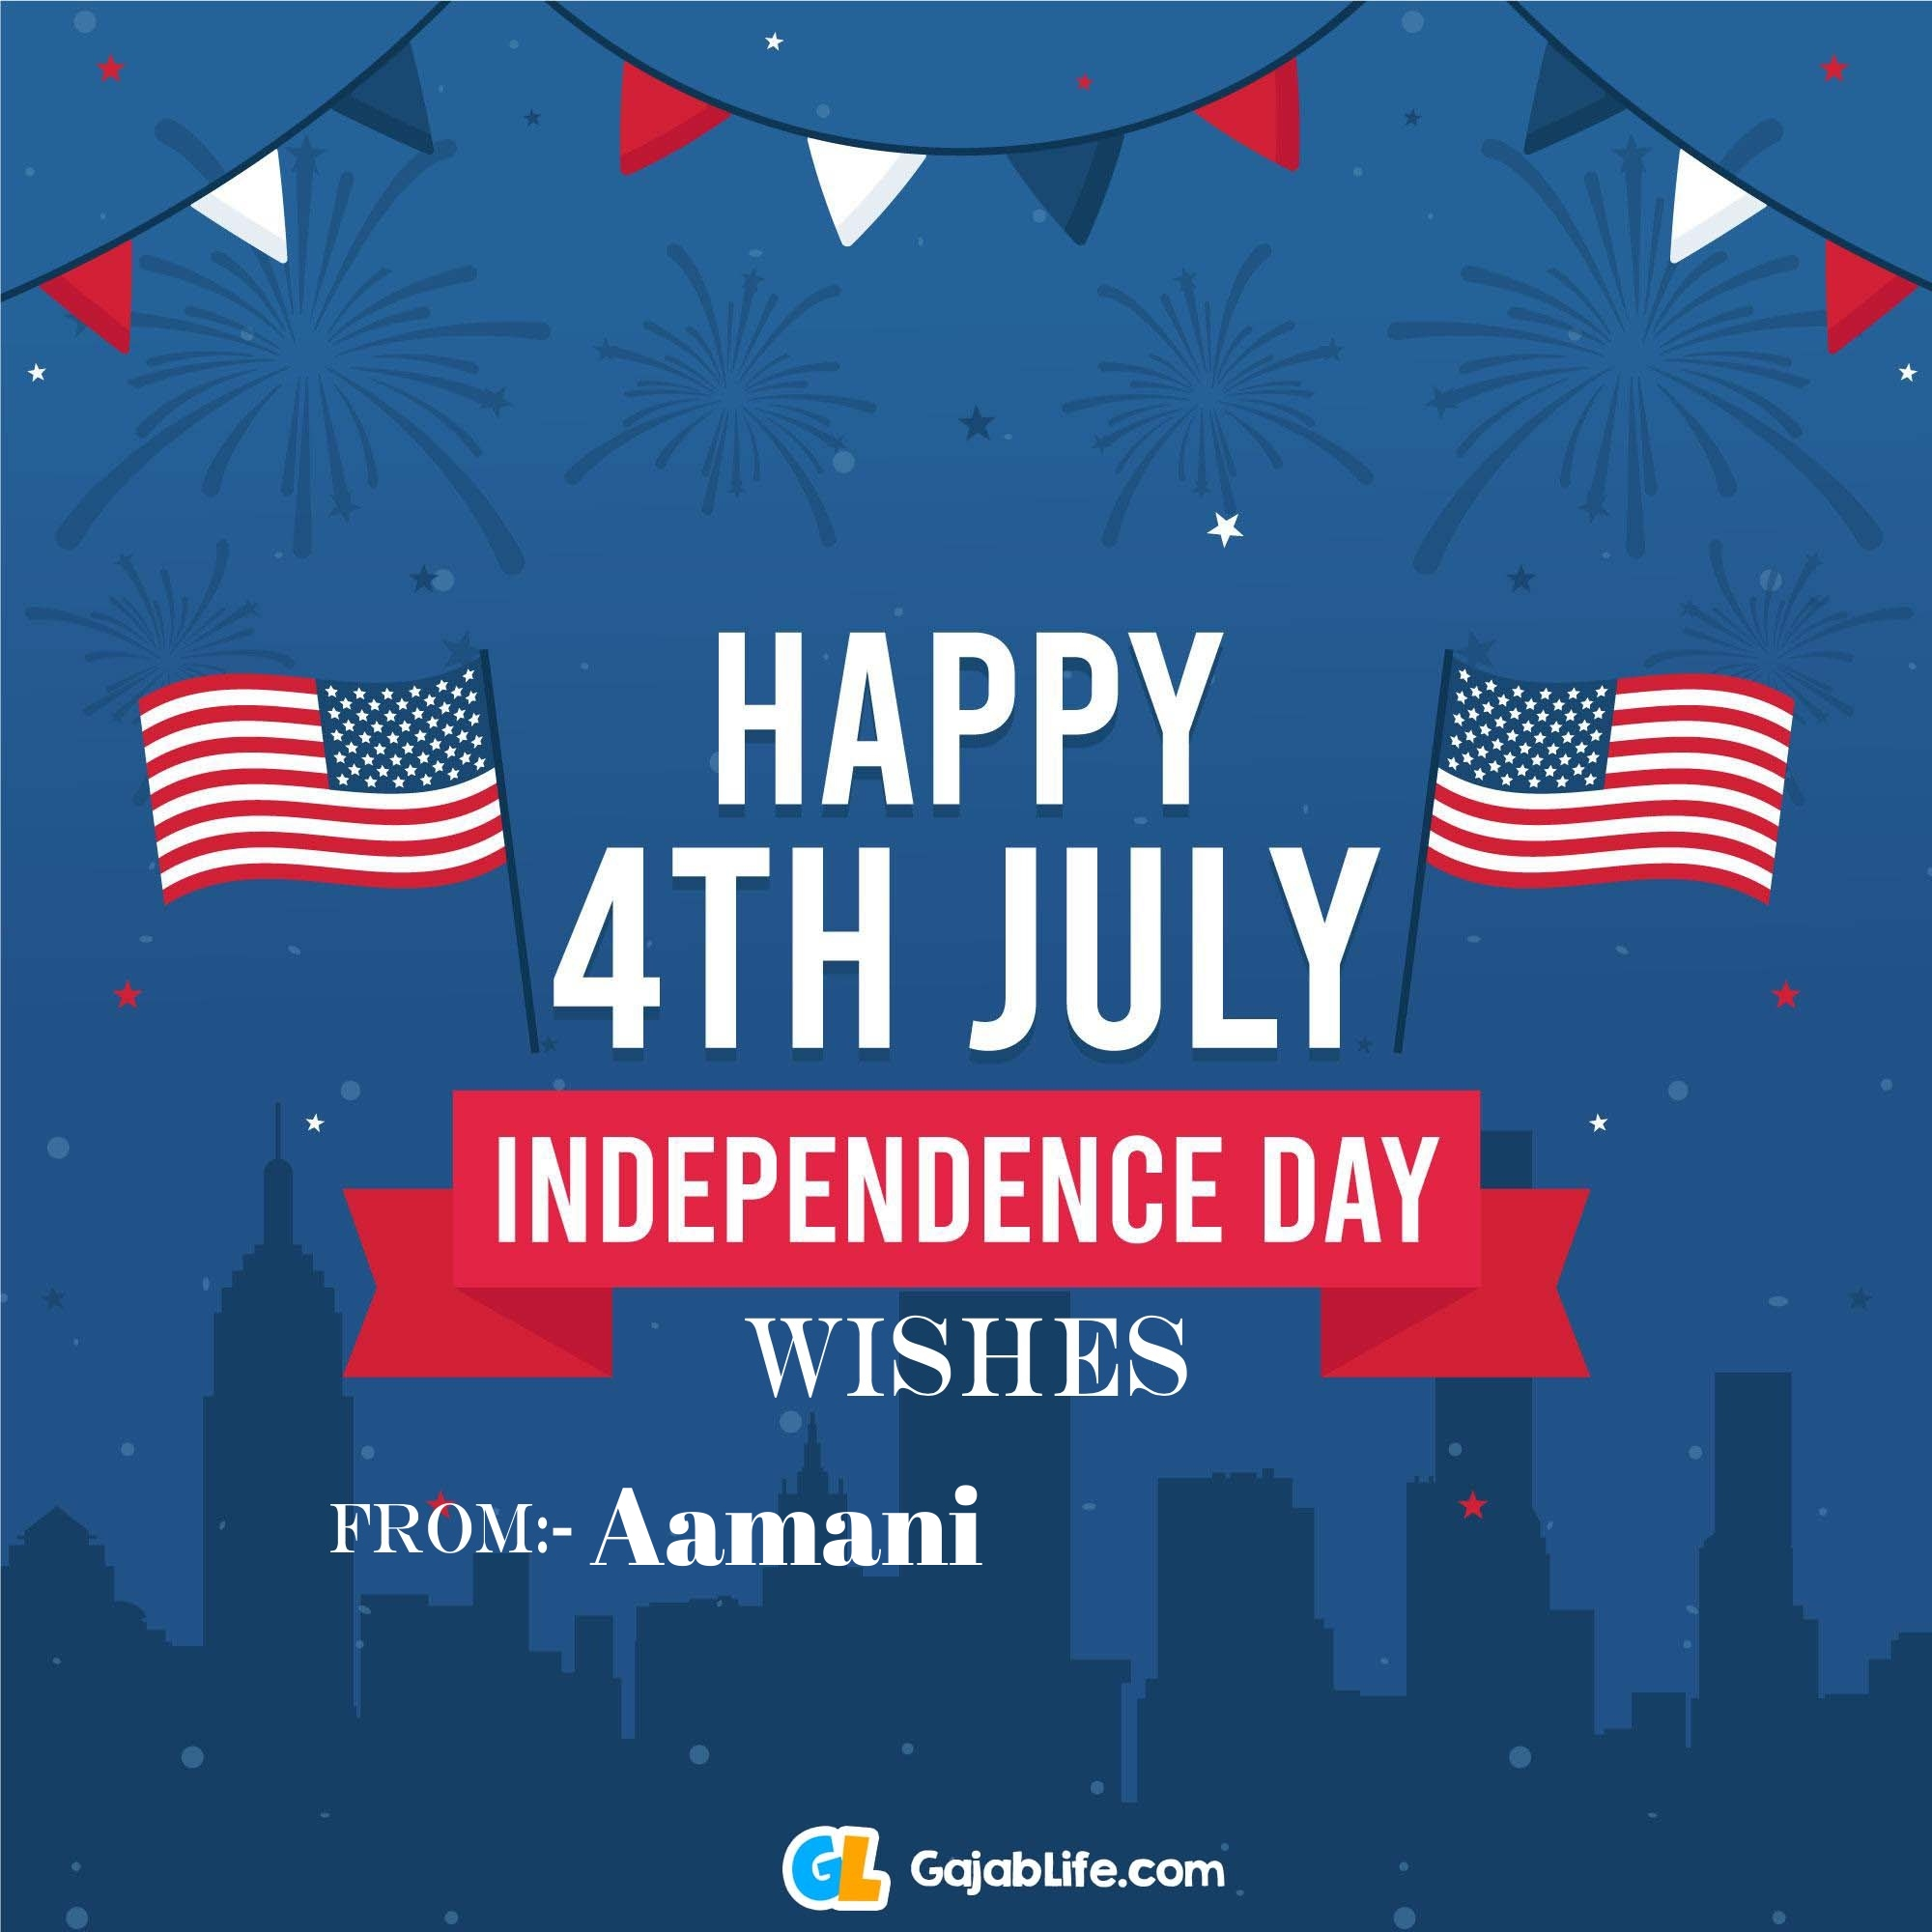 Aamani happy independence day united states of america images